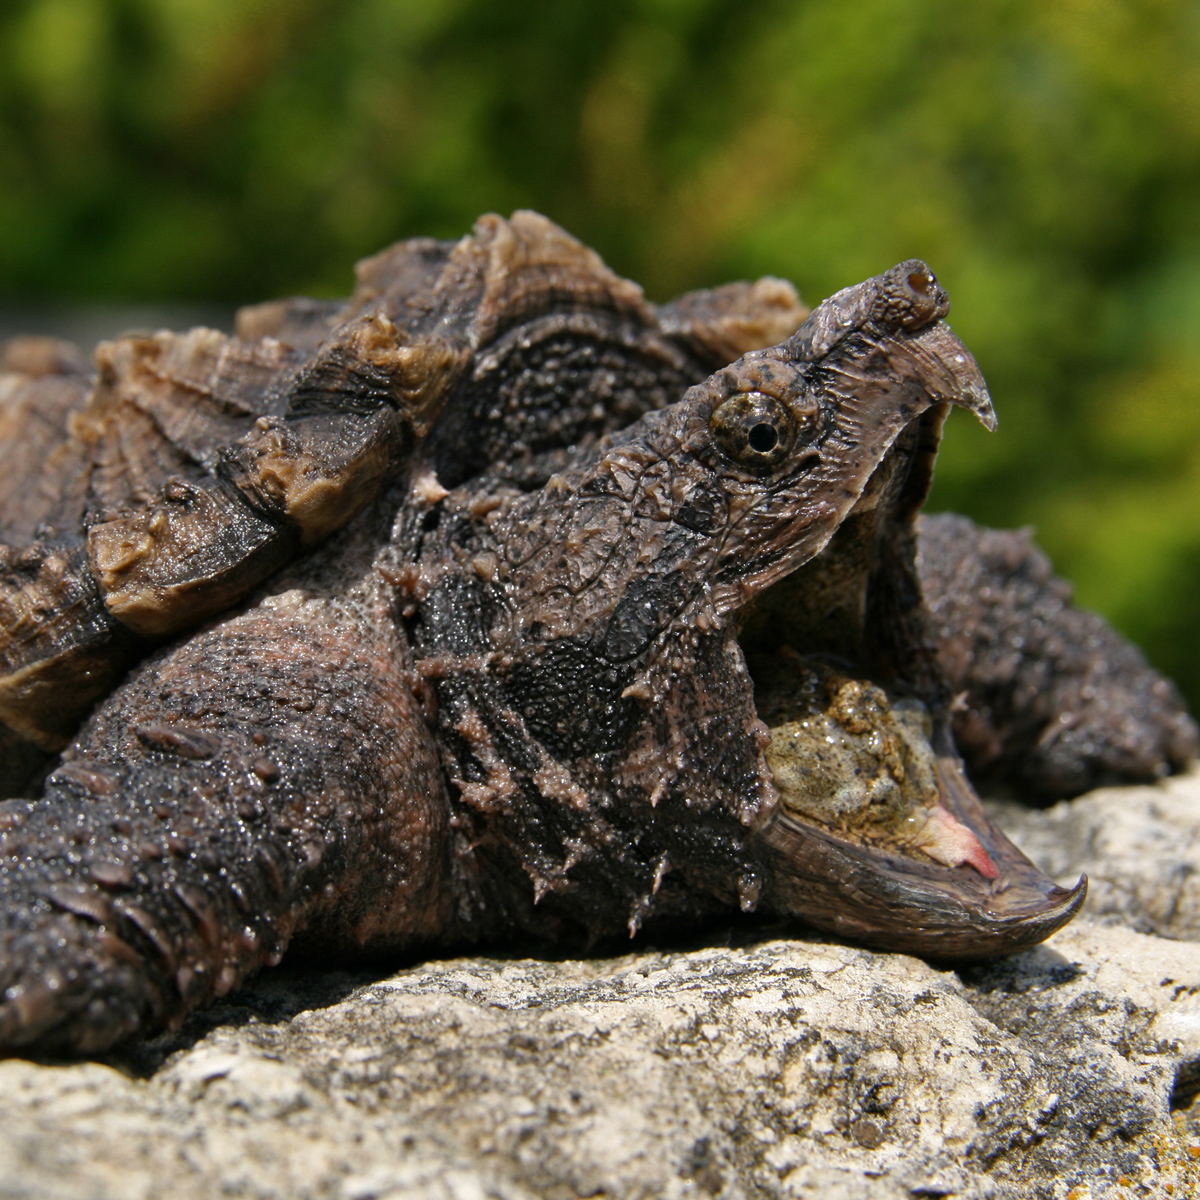 Alligator Snapping Turtle (Macrochelys temminckii) | about animals